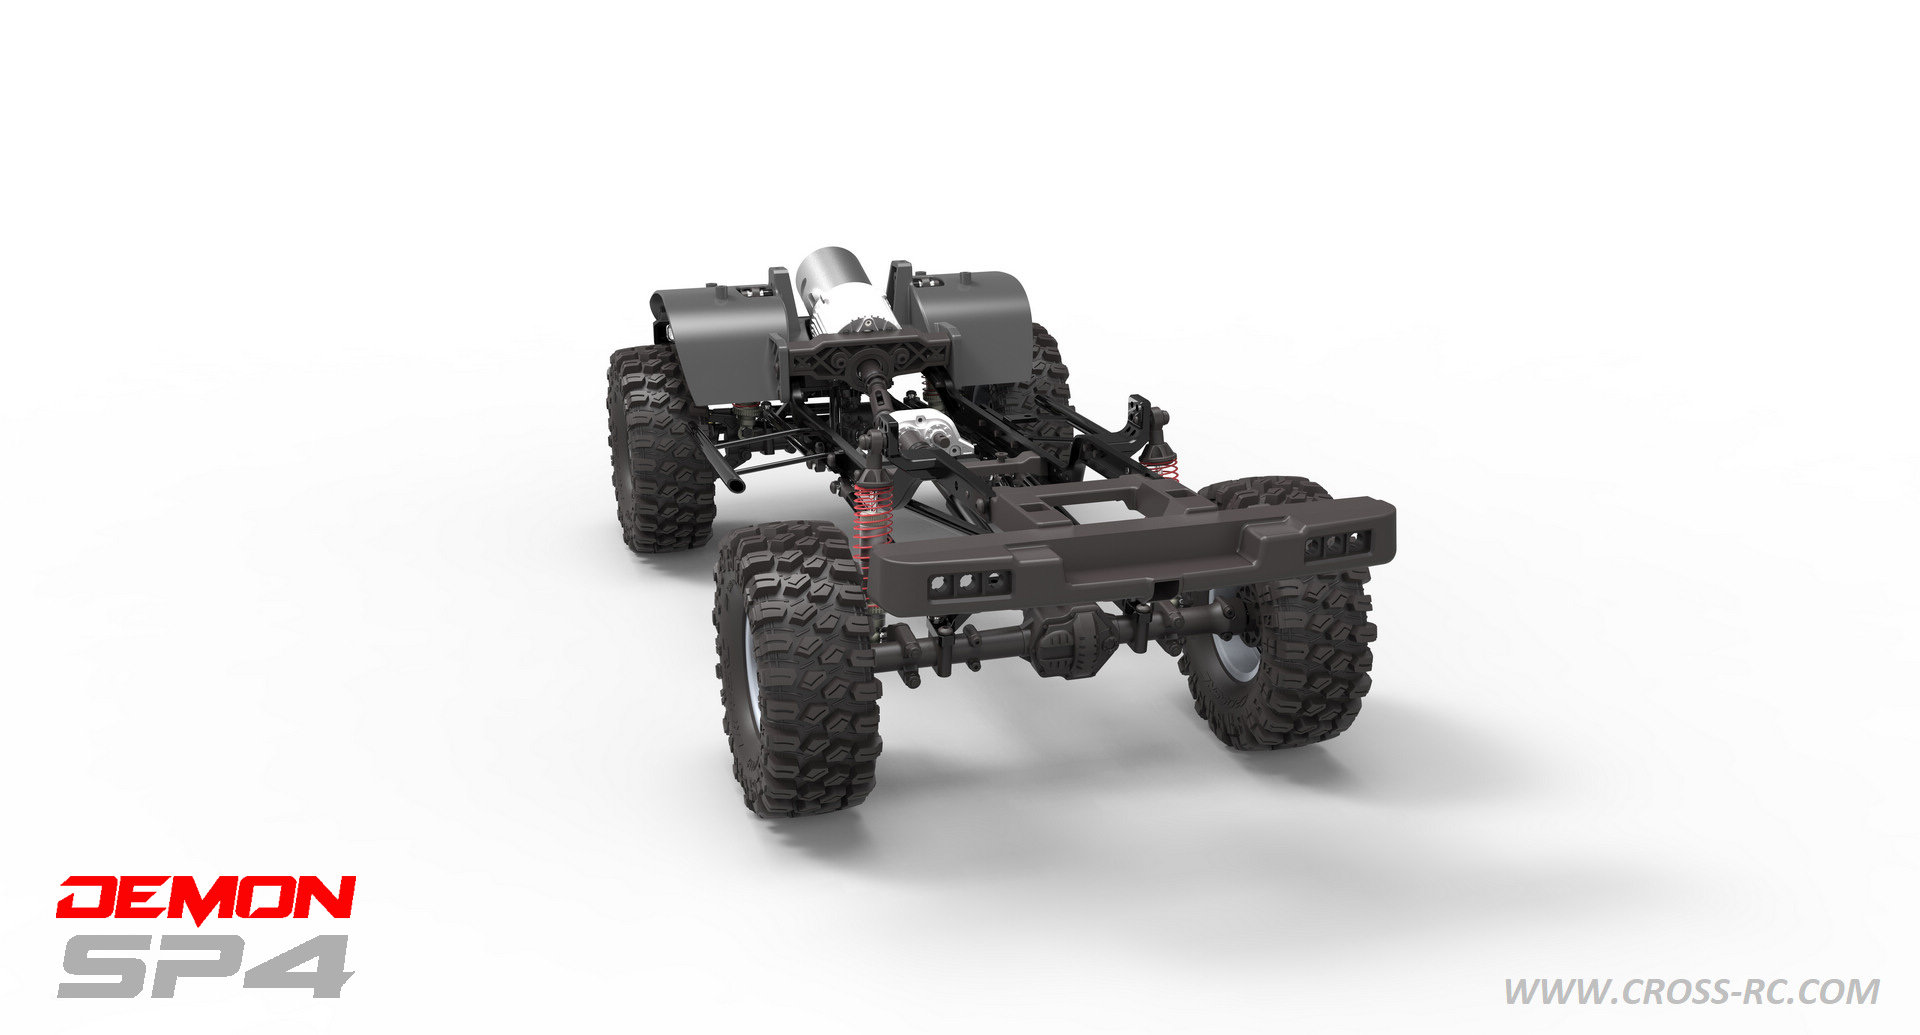 New Cross RC FR4 and SP4 Scale Models - RC Driver